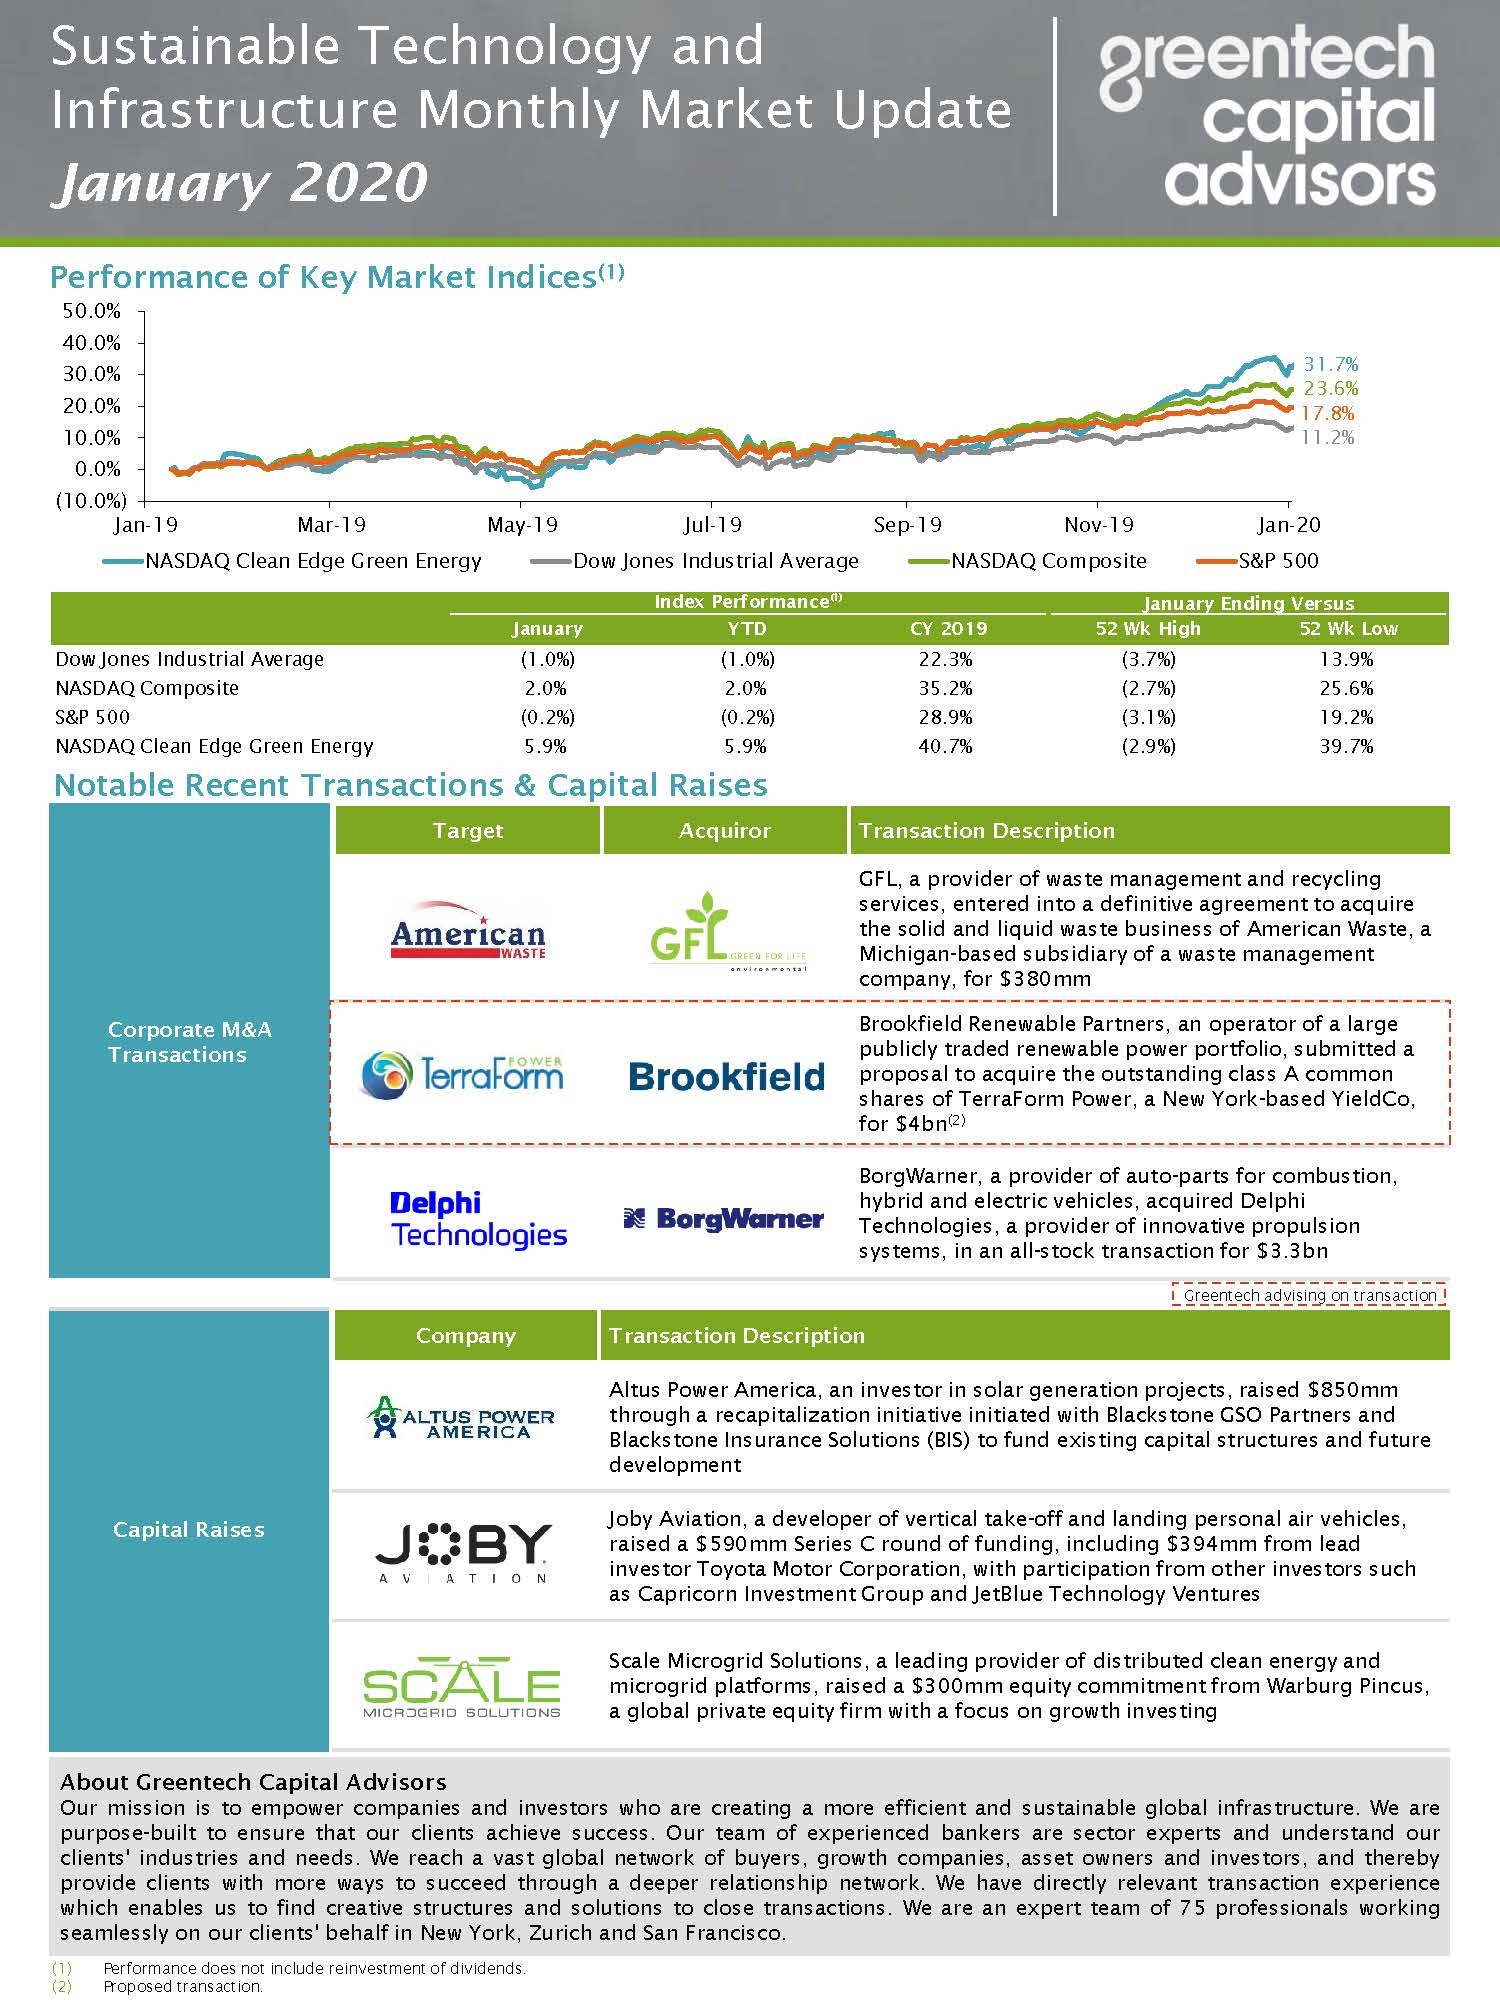 Sustainable Investing Monthly Market Update - January 2020